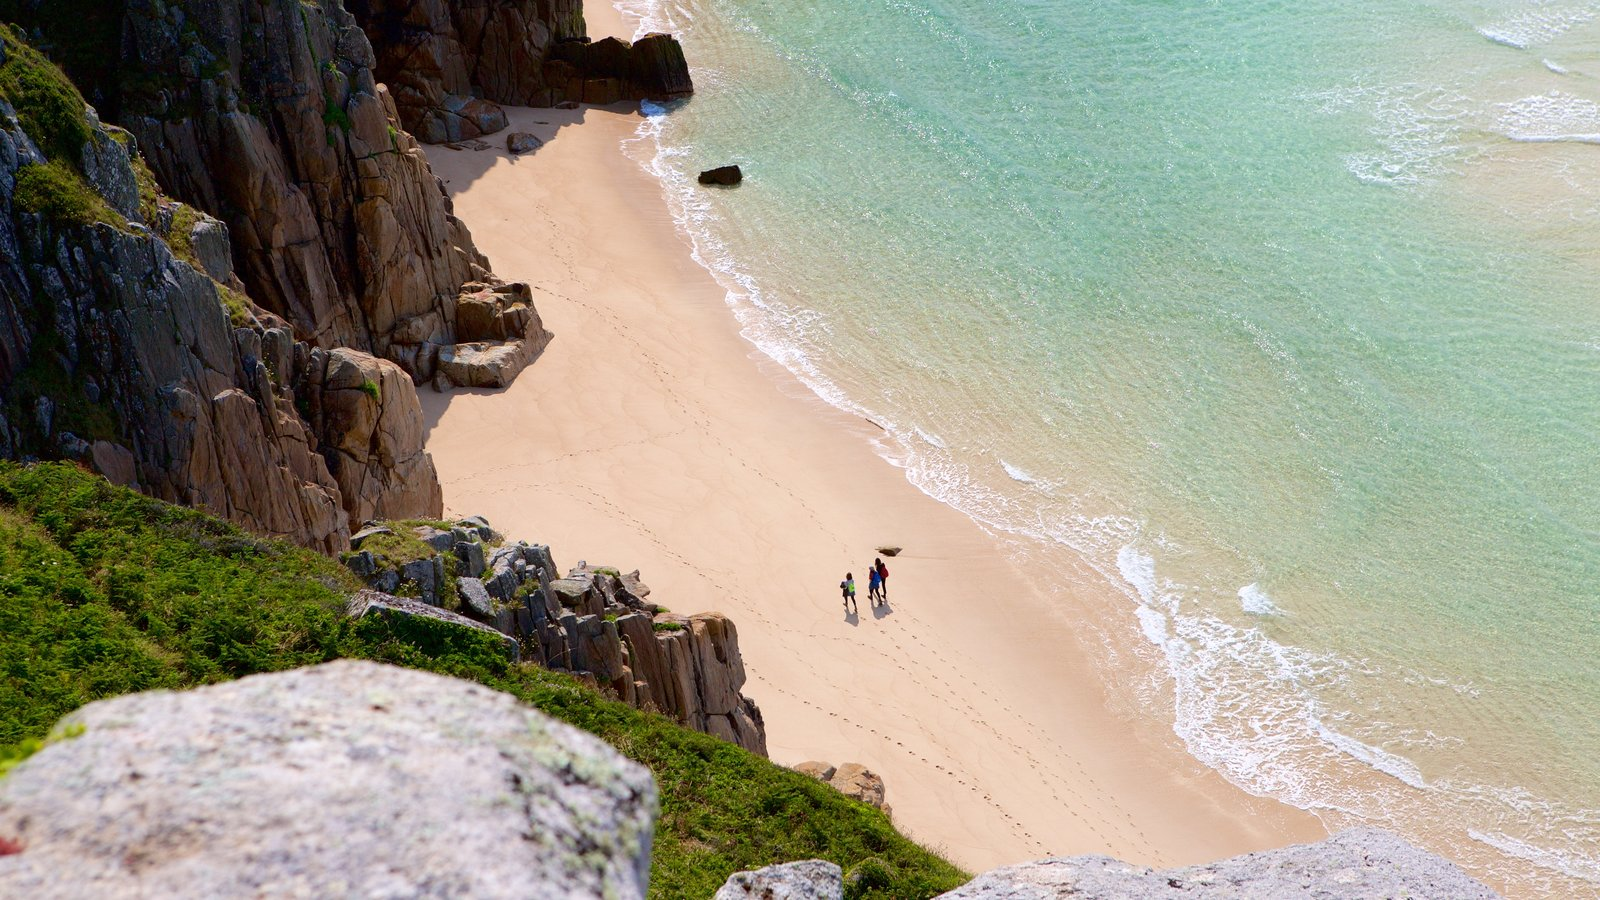 Porthcurno Beach which includes a sandy beach and rugged coastline